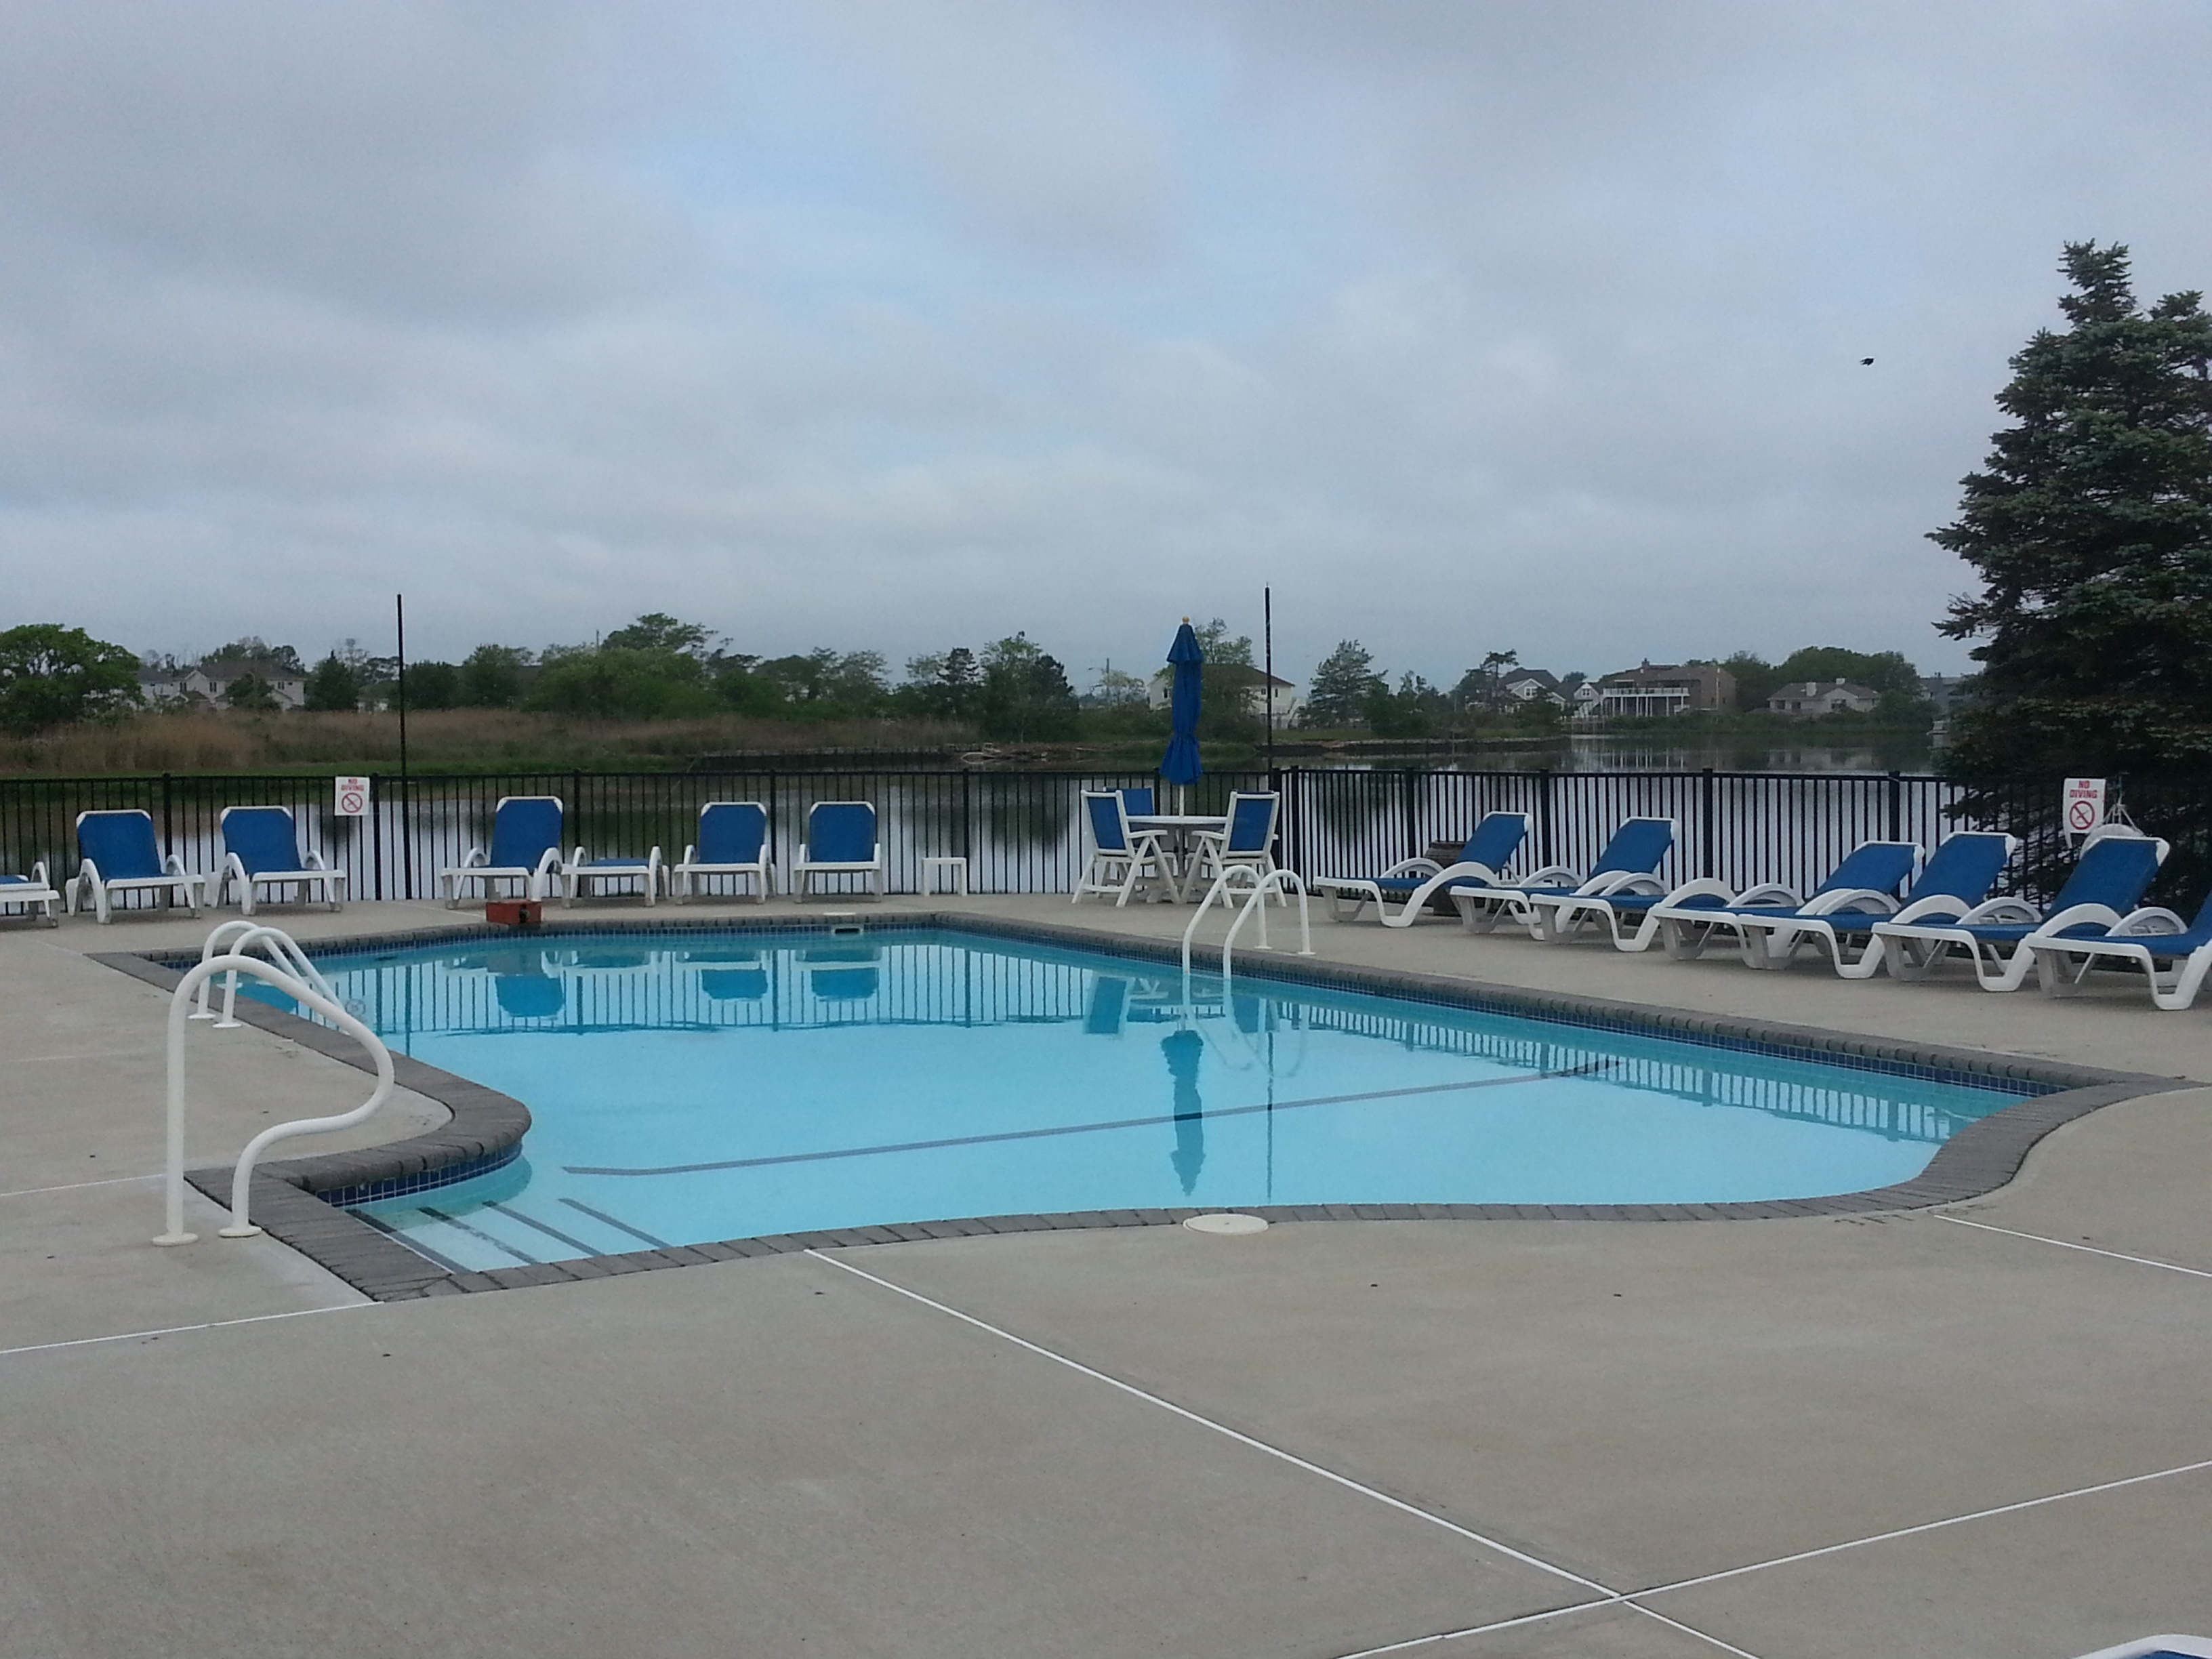 The Sands Point South community pool overlooks the river.